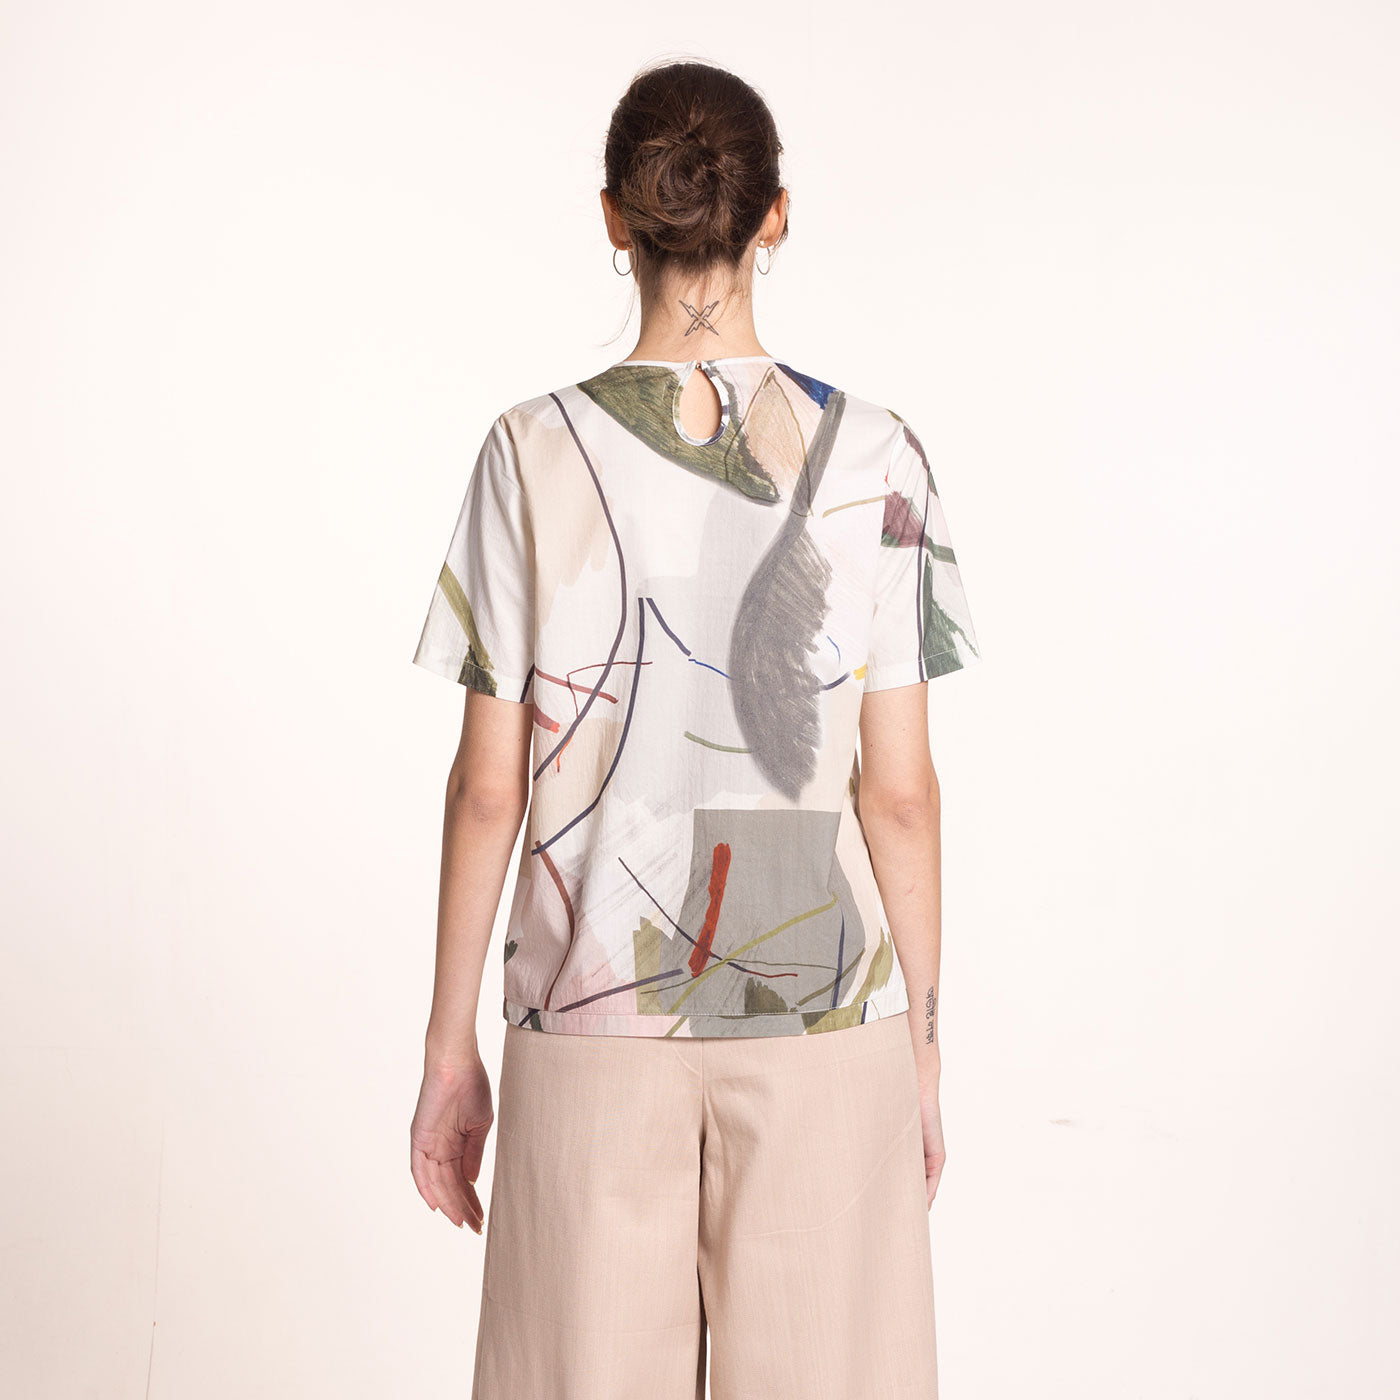 The model wears a sustainable, organic cotton, short sleeved blouse with round neckline and printed beige fabric with coloful shapes, back view.